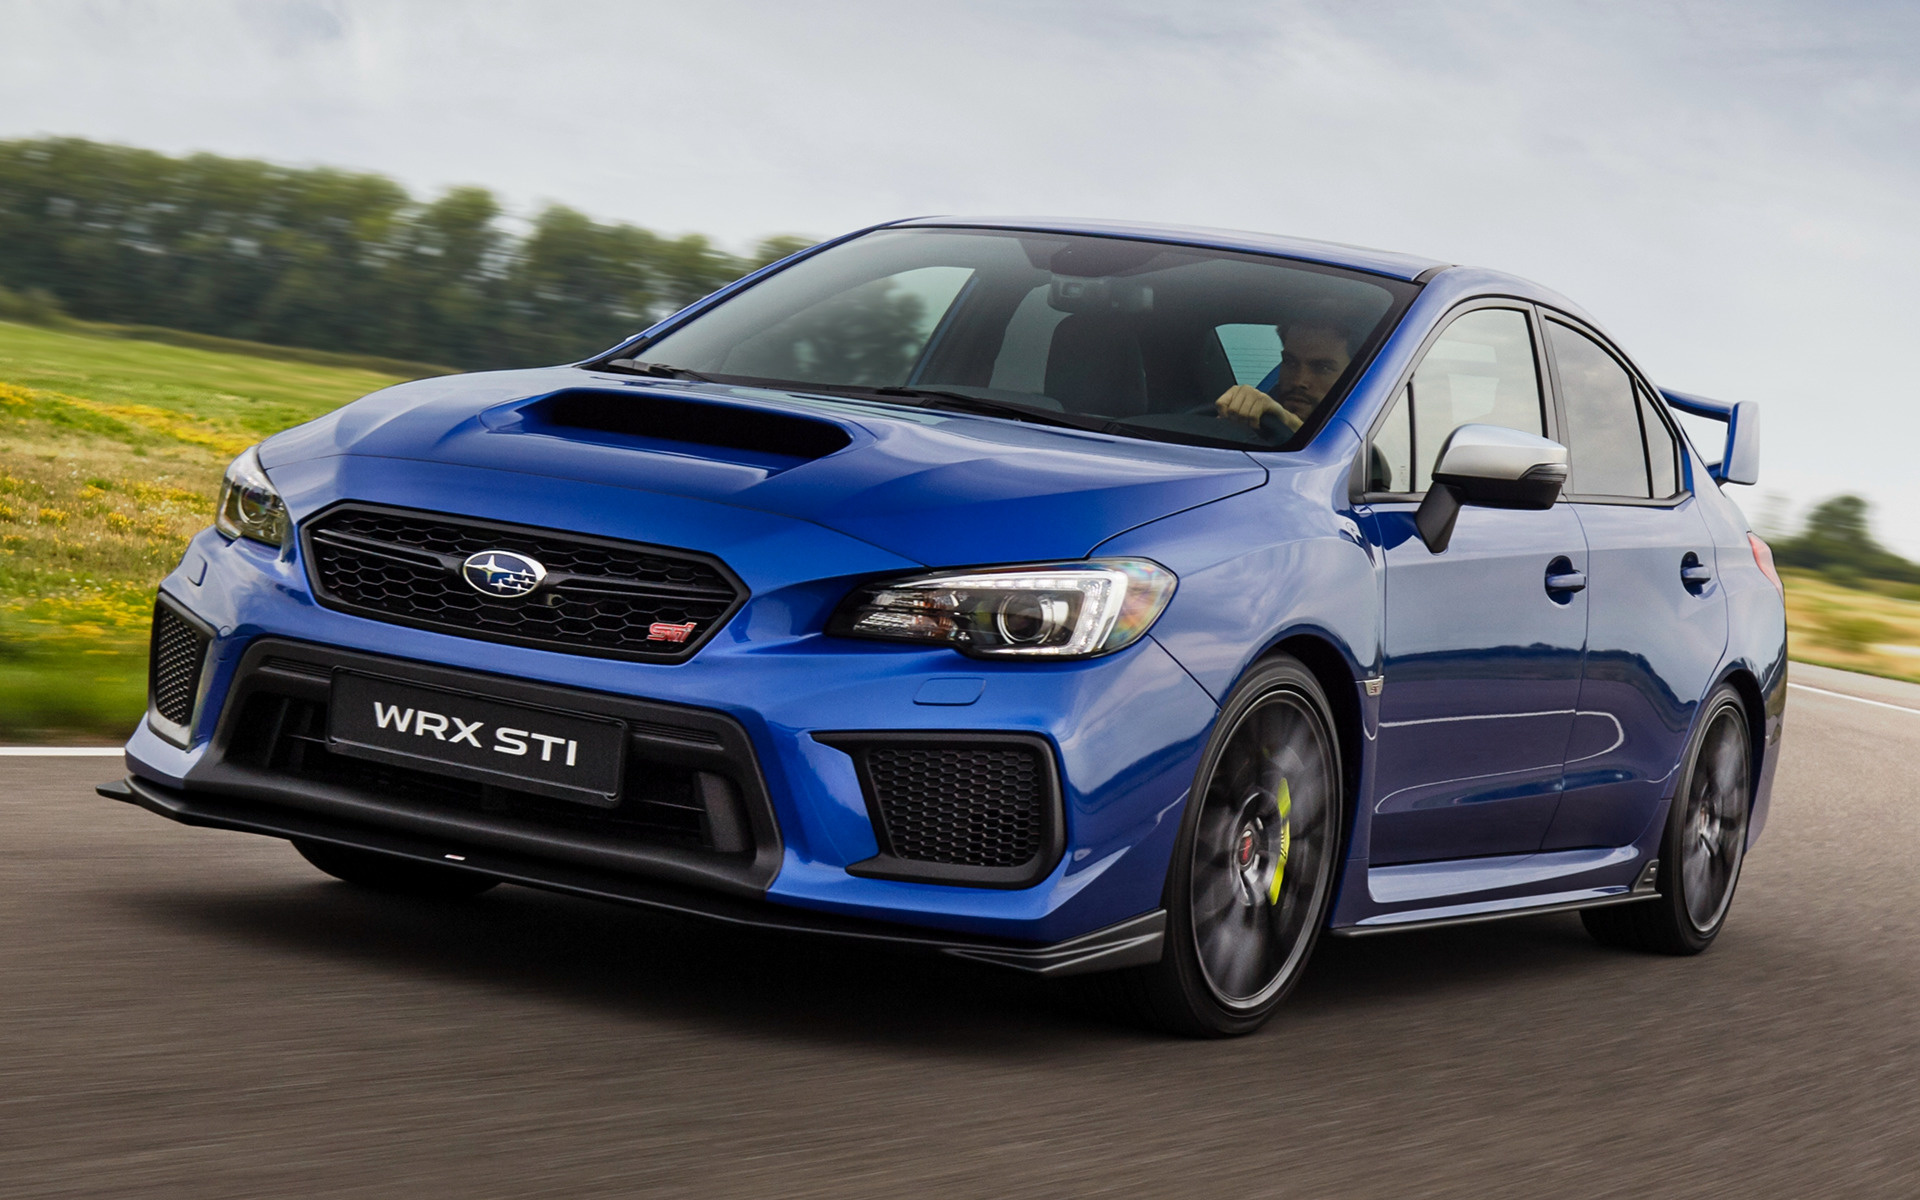 Subaru WRX STI 2017 Wallpapers And HD Images Car Pixel